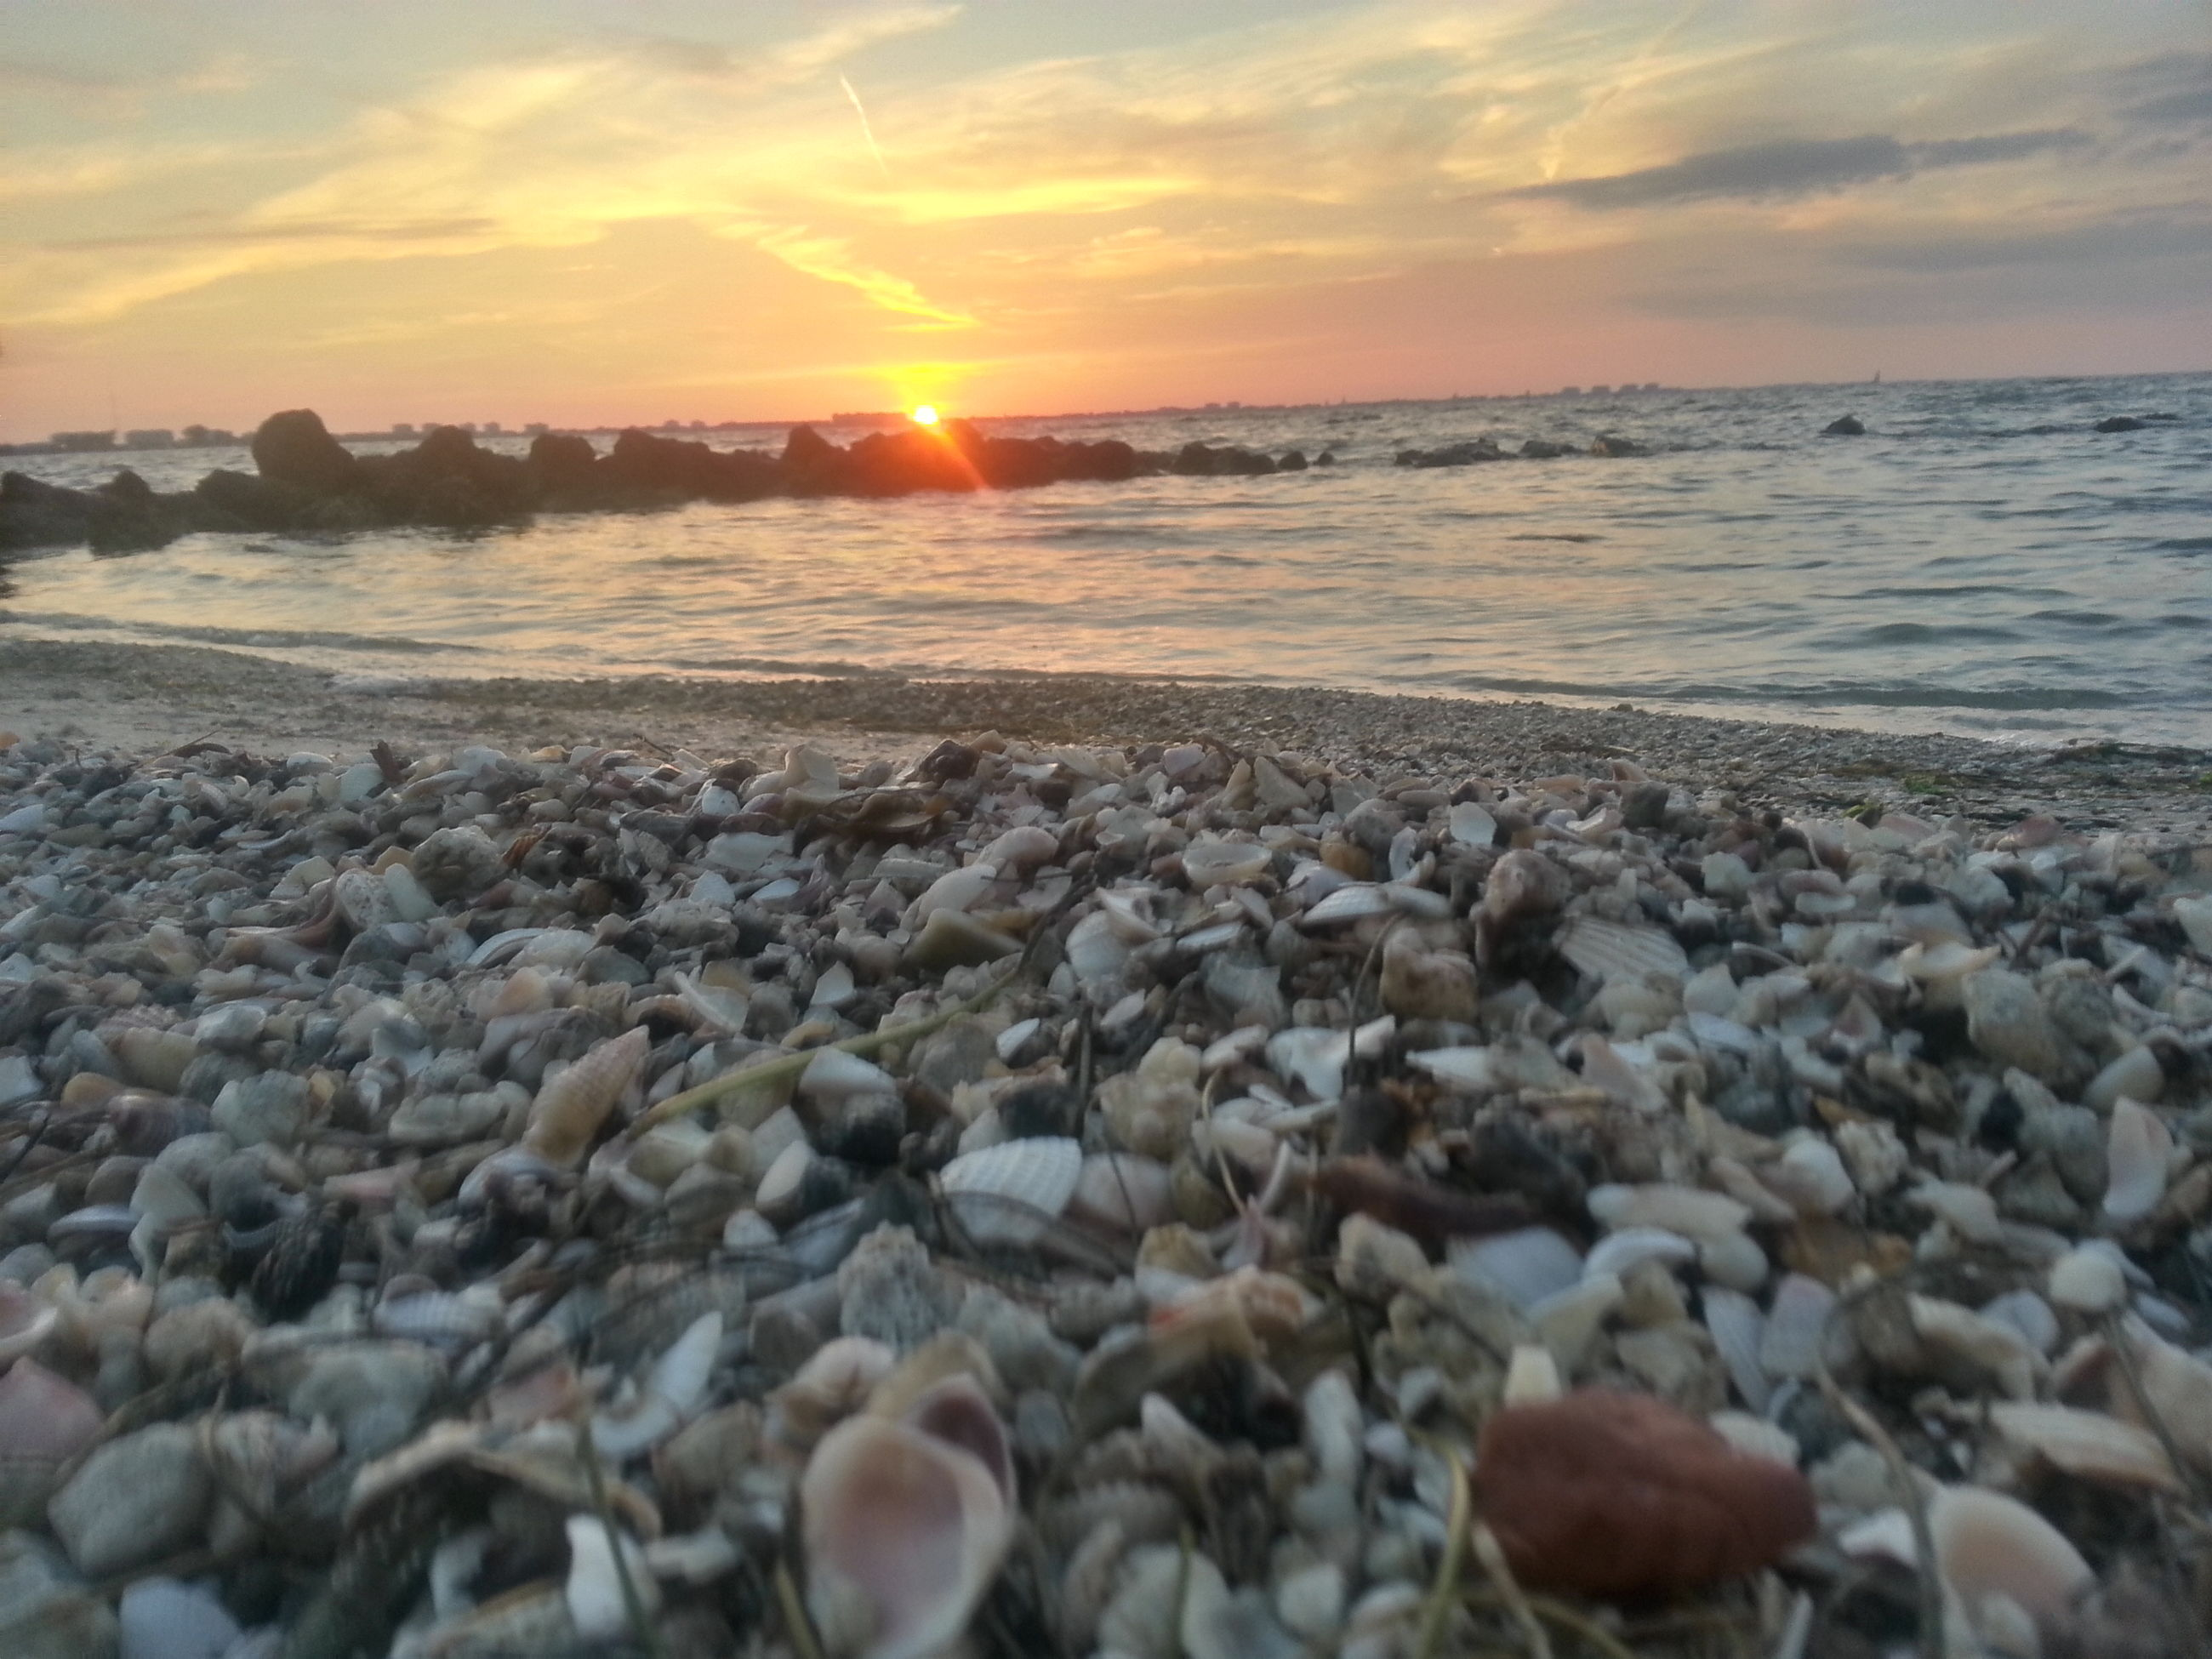 sunset, sea, beach, water, sky, scenics, tranquil scene, beauty in nature, horizon over water, tranquility, shore, sun, nature, cloud - sky, orange color, idyllic, stone - object, rock - object, reflection, pebble